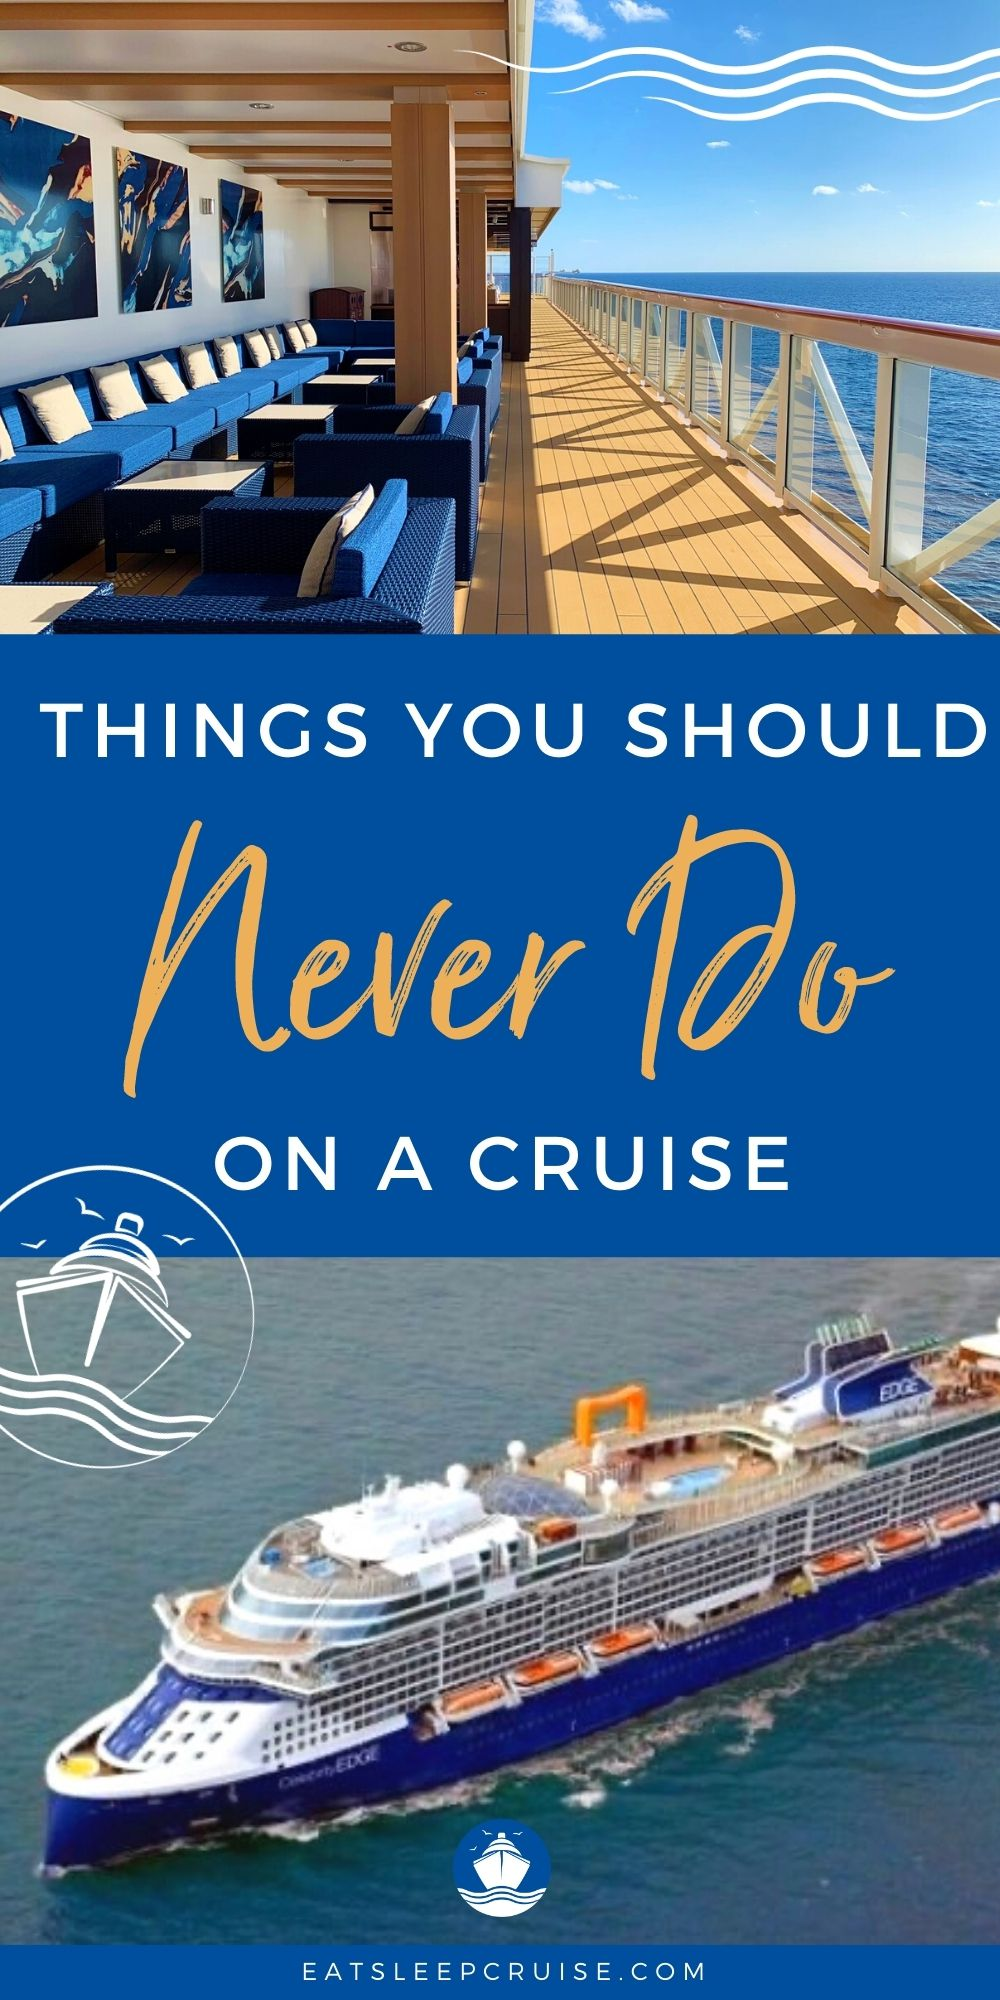 Things you should never do on a cruise